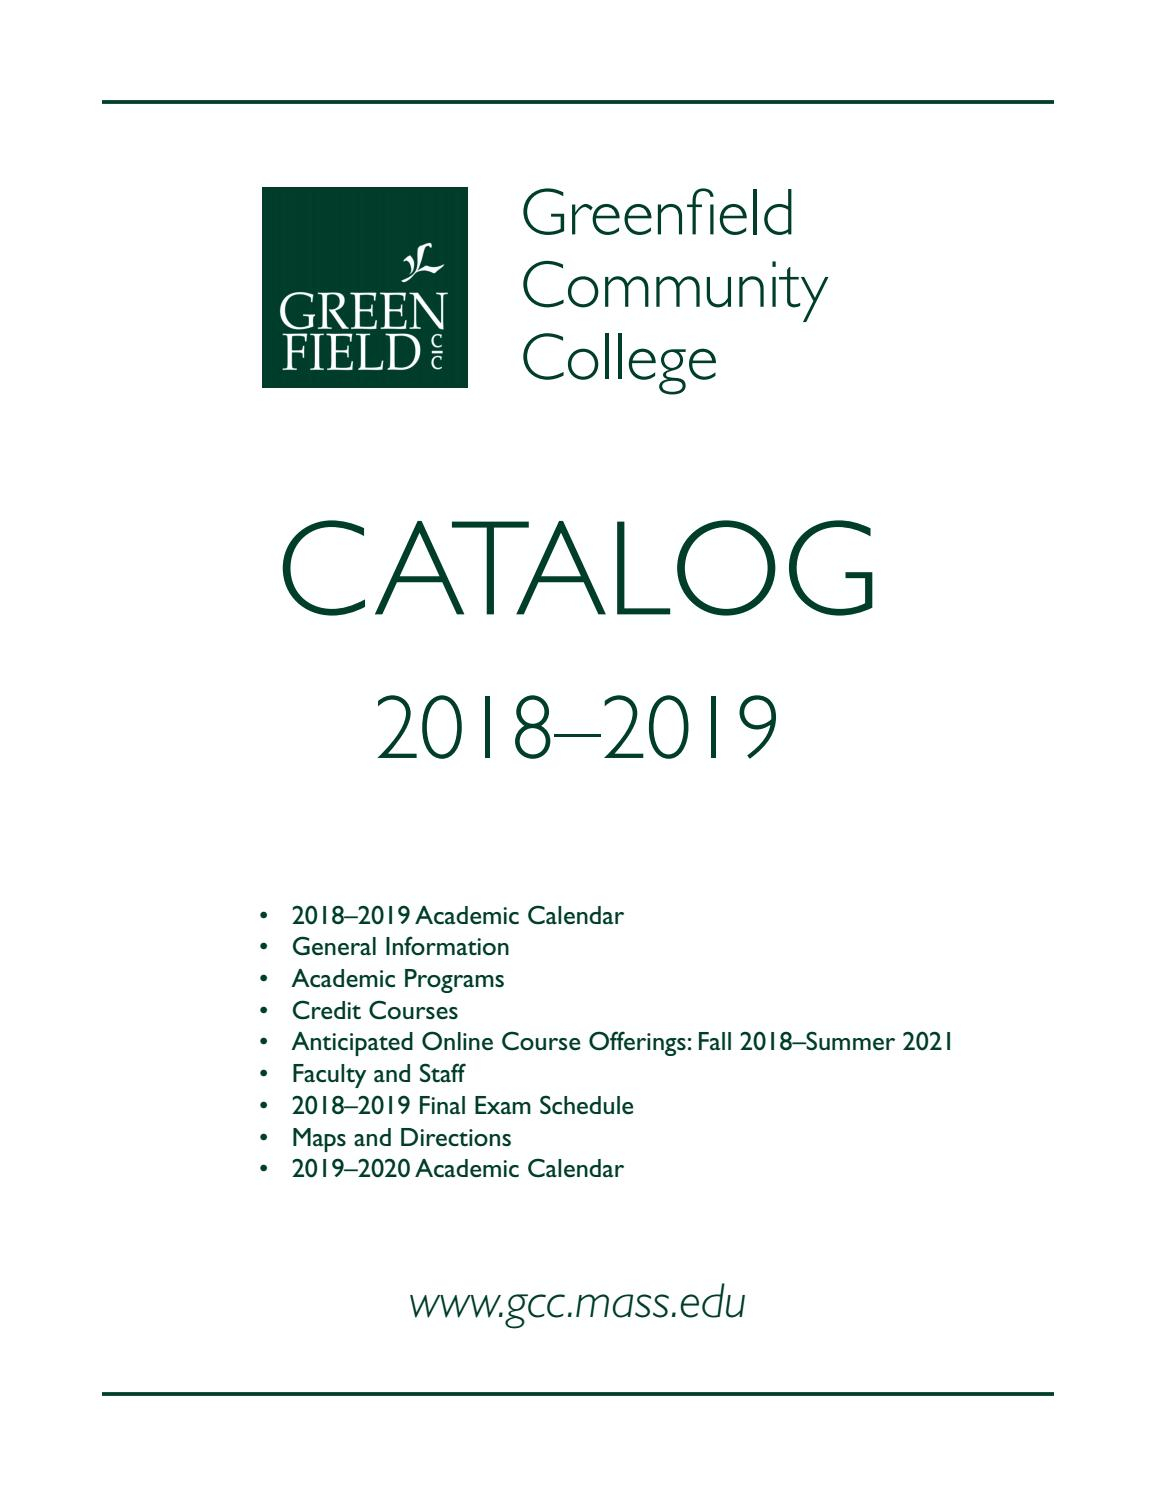 2018 19 Gcc Cataloggreenfield Community College – Issuu For Academic Calendar Suffolk Community College